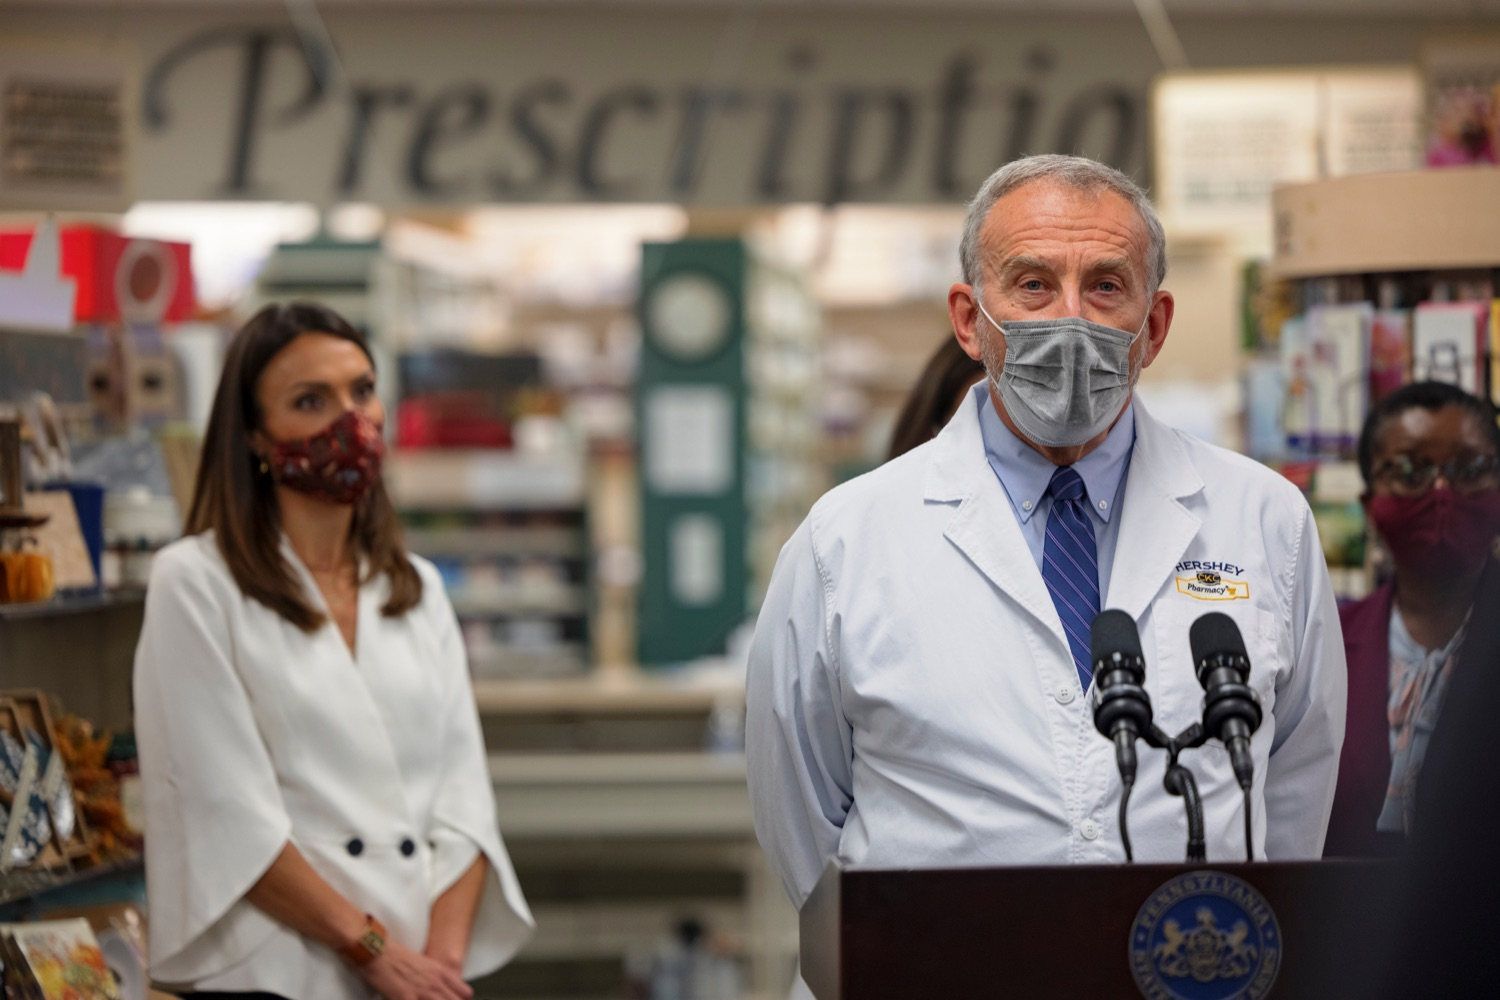 """<a href=""""https://filesource.wostreaming.net/commonwealthofpa/photo/19144_DOH_BoosterShots_NK_004.jpg"""" target=""""_blank"""">⇣Download Photo<br></a>Chuck Kray, pharmacist and owner of Hershey Pharmacy, speaks during a press conference, which discussed an order to ensure that vaccine providers are prepared to start COVID-19 booster shots as soon as the Centers for Disease Control and Prevention (CDC) issues the necessary federal guidance, in Hershey Pharmacy in Hershey on Tuesday, September 21, 2021. Pennsylvania is well prepared to start providing vaccine booster shots just as soon as the CDC provides the approval and guidelines on who can get it, Acting Secretary of Health Alison Beam said. Vaccine providers  especially pharmacies  have already done a tremendous job administering more than 12 million vaccines across the state. Now they are ready to get booster shots to people as quickly and efficiently as possible."""